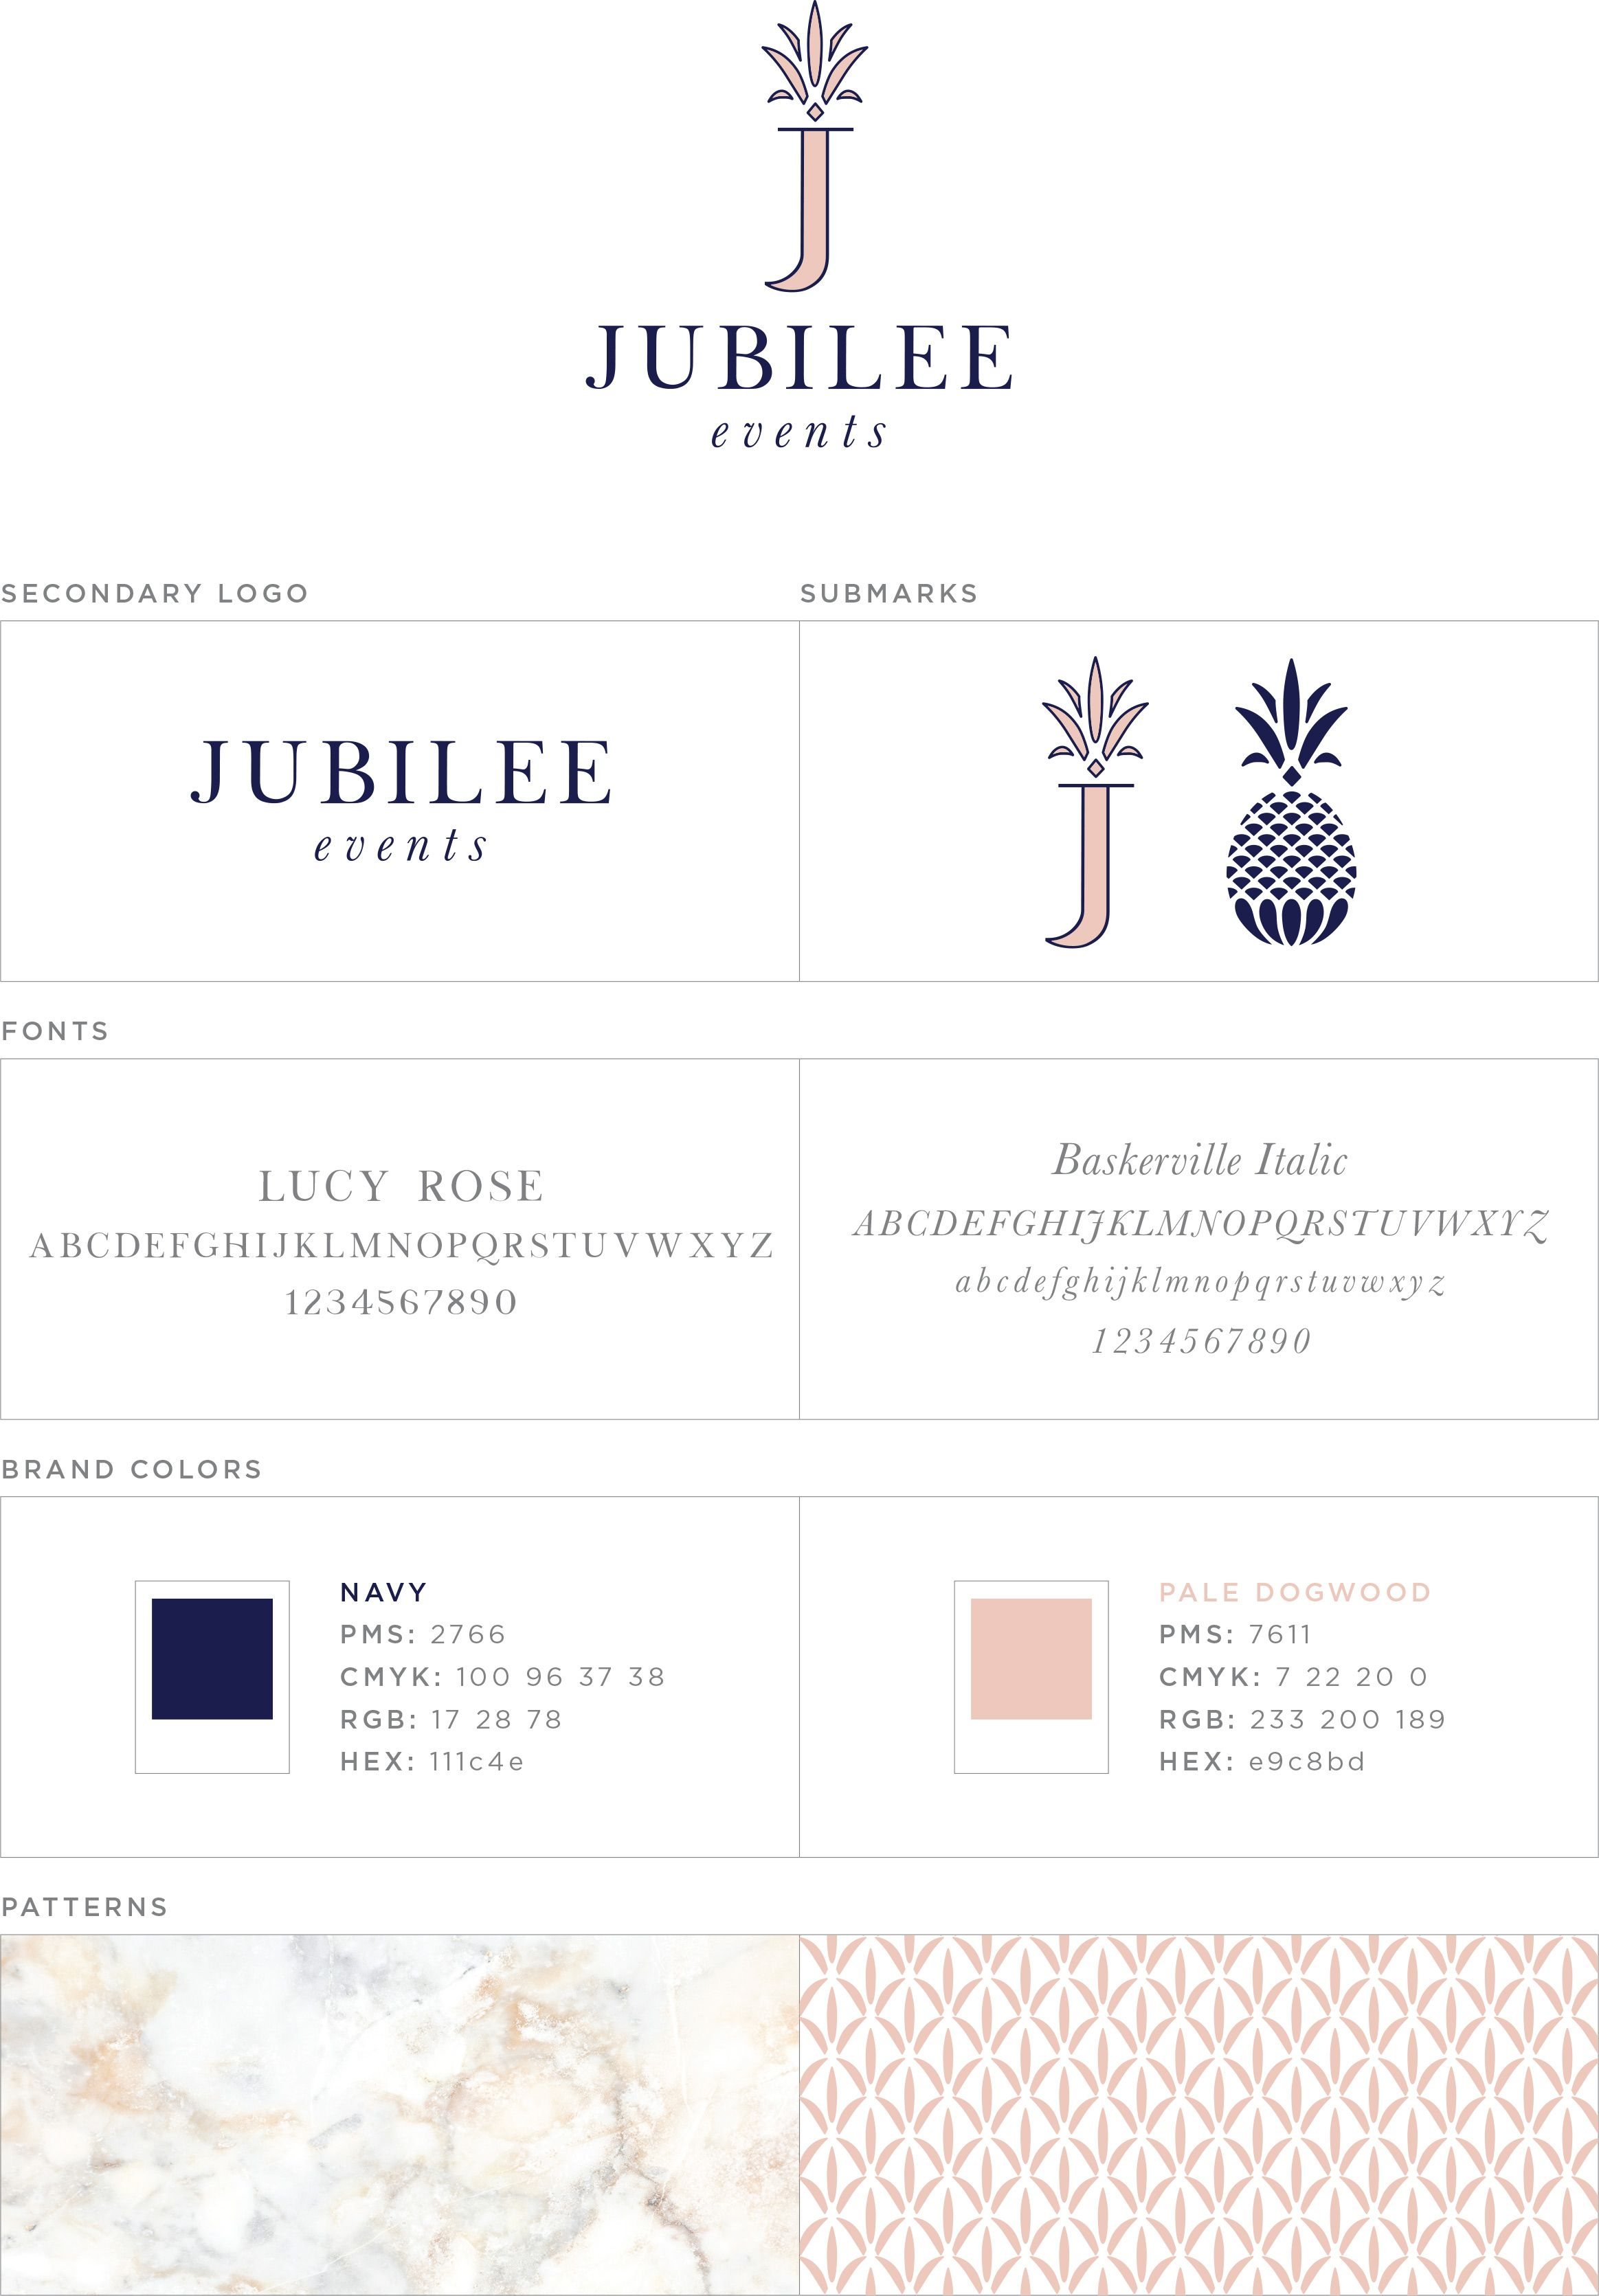 The Future Of Jubilee Events